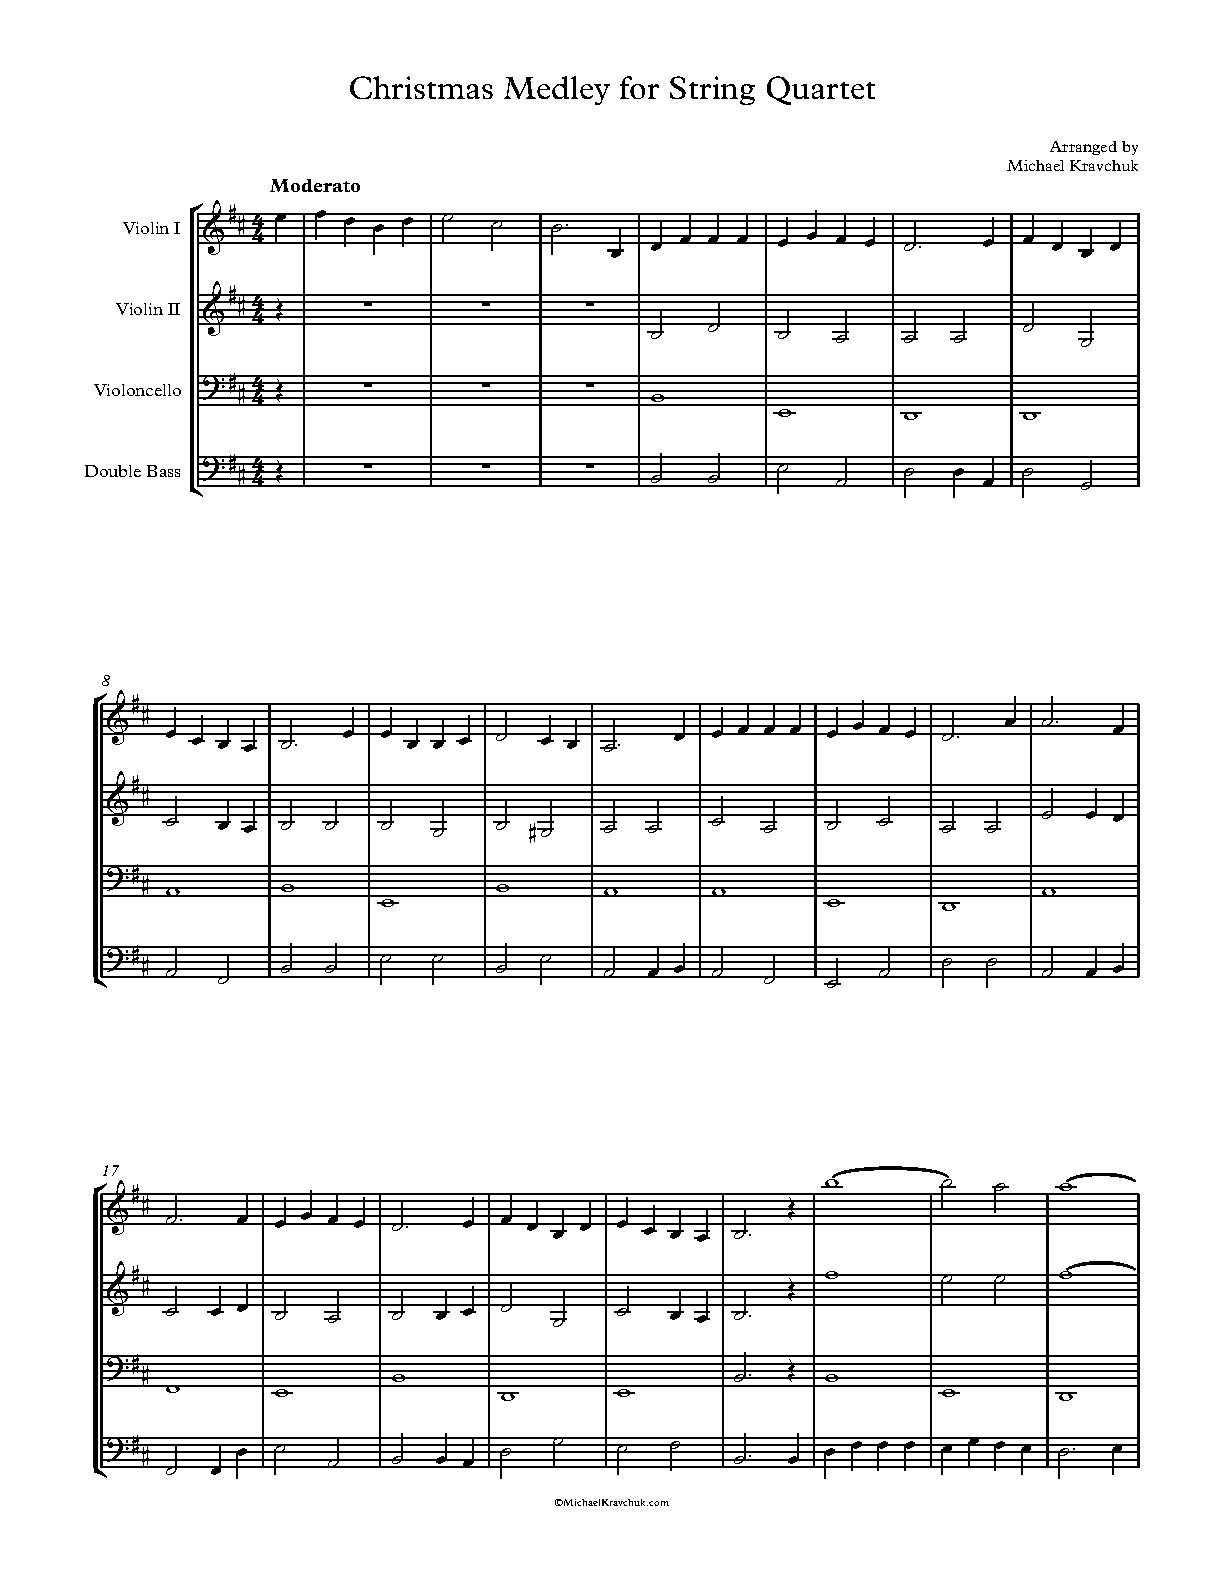 Christmas Medley For 2 Violins, Cello and String Bass - Kravchuk